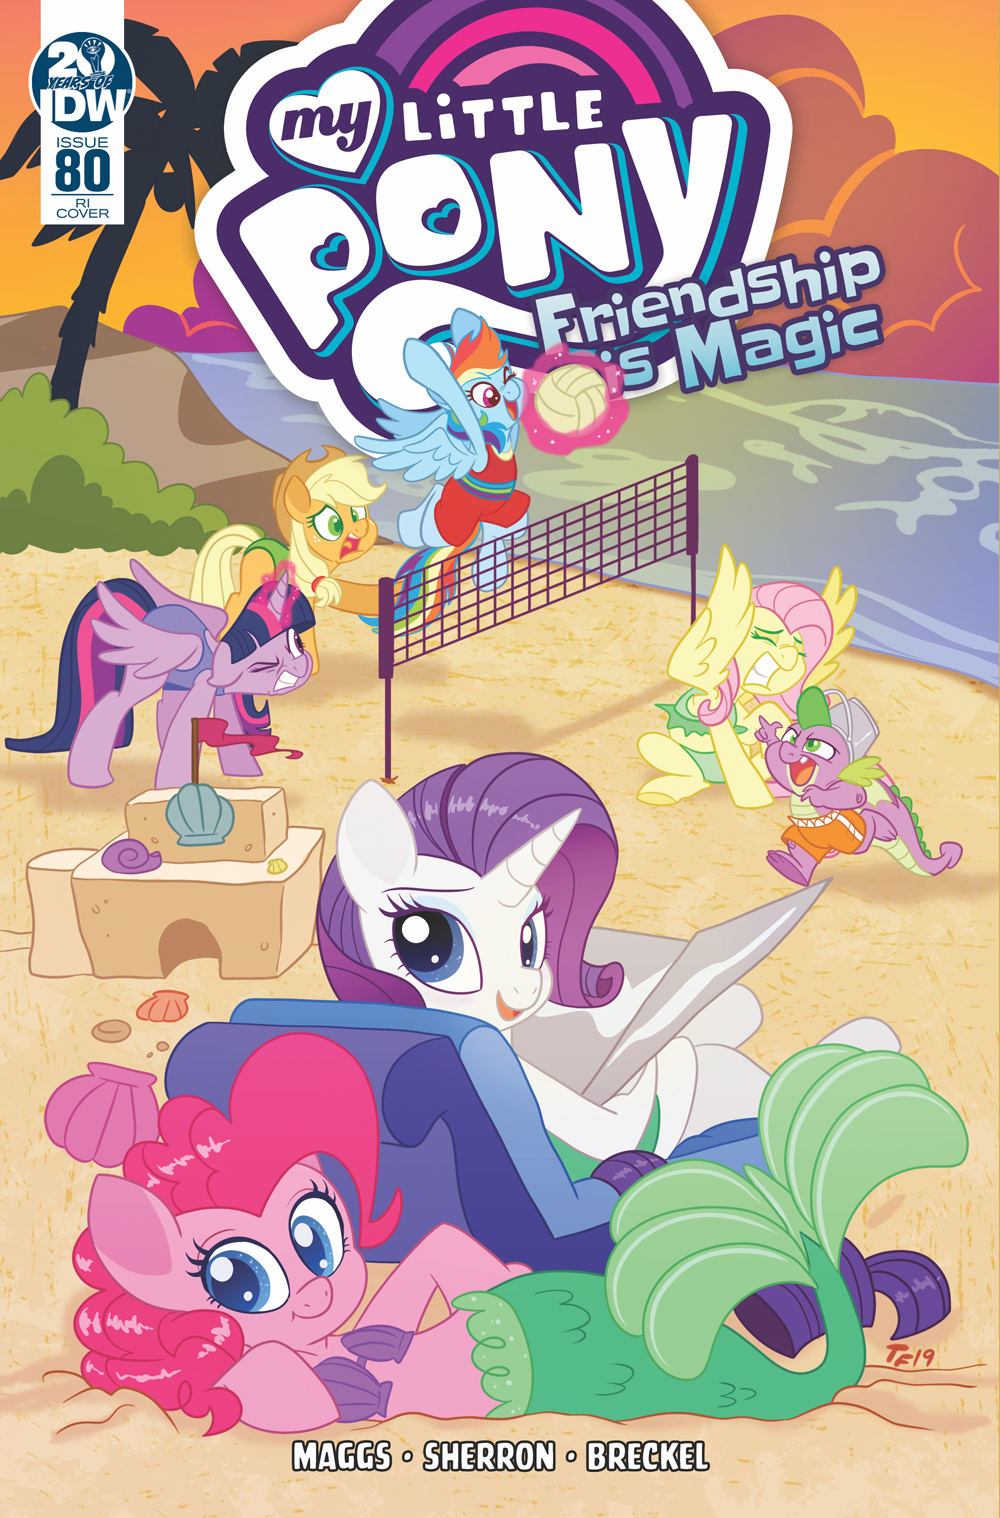 MY LITTLE PONY FRIENDSHIP IS MAGIC #80 10 COPY INCV FORSTNER